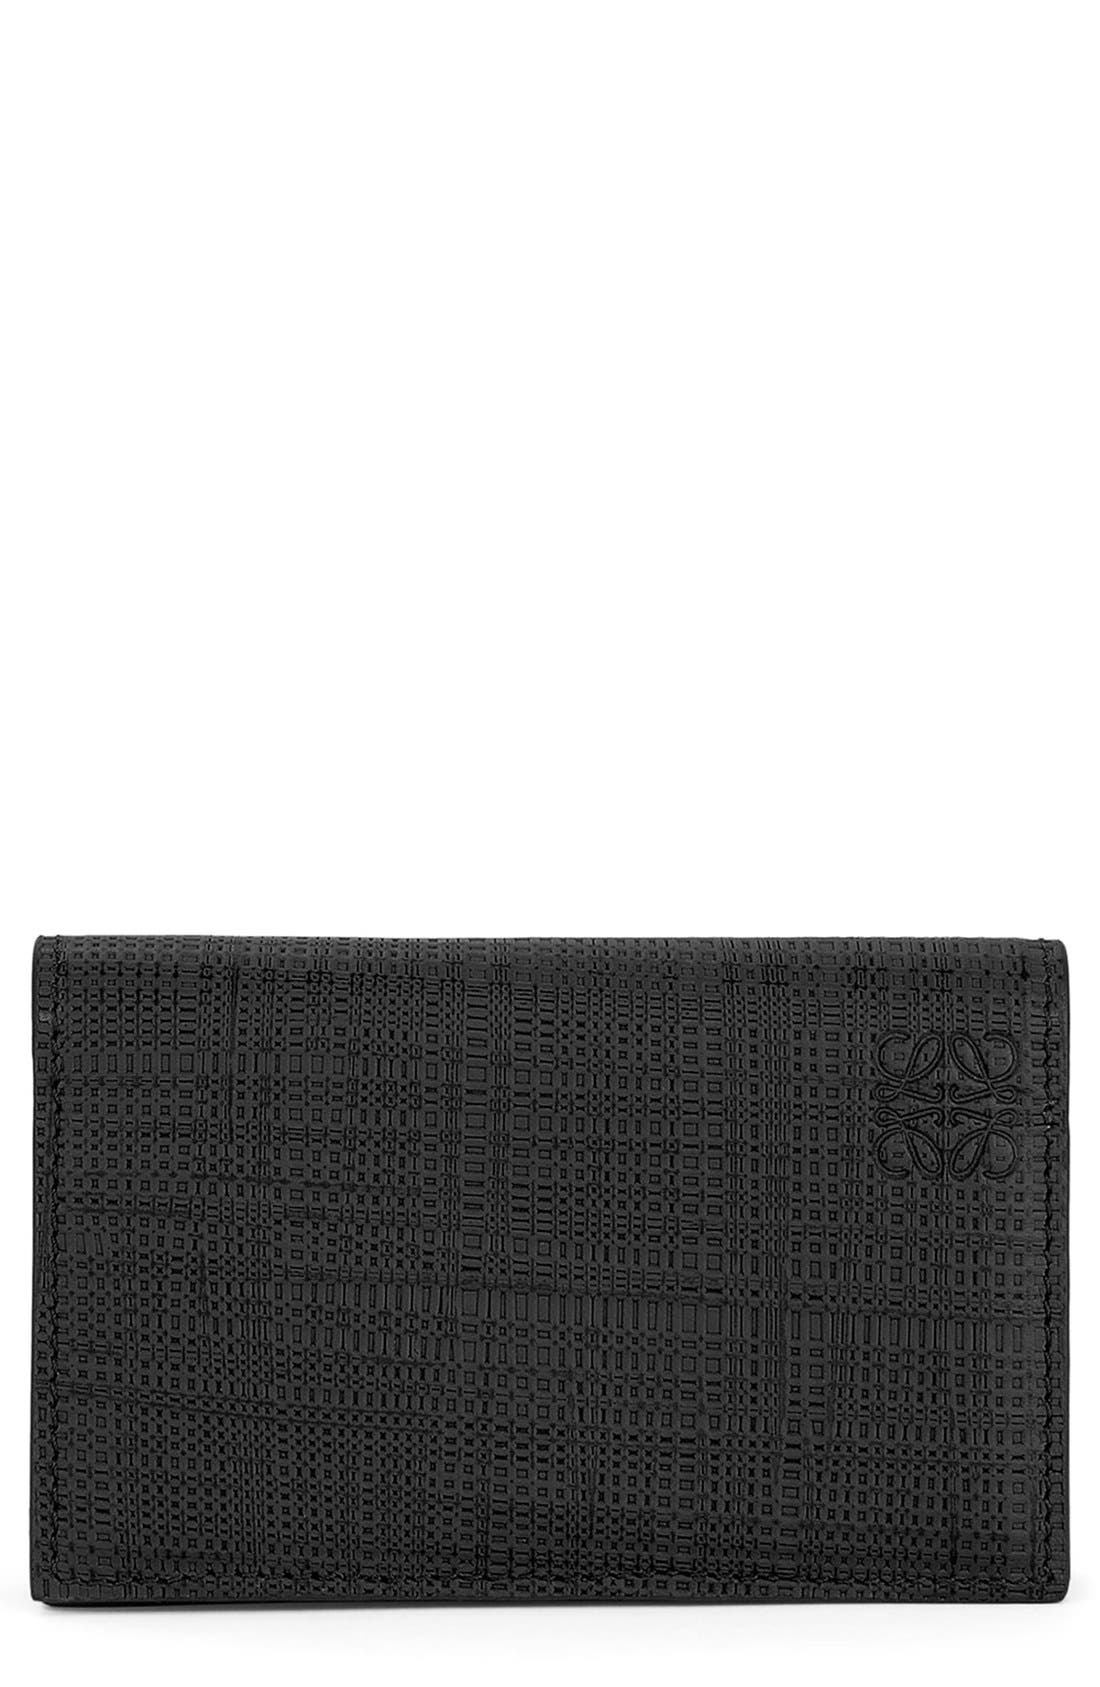 Loewe Textured Calfskin Leather Business Card Holder